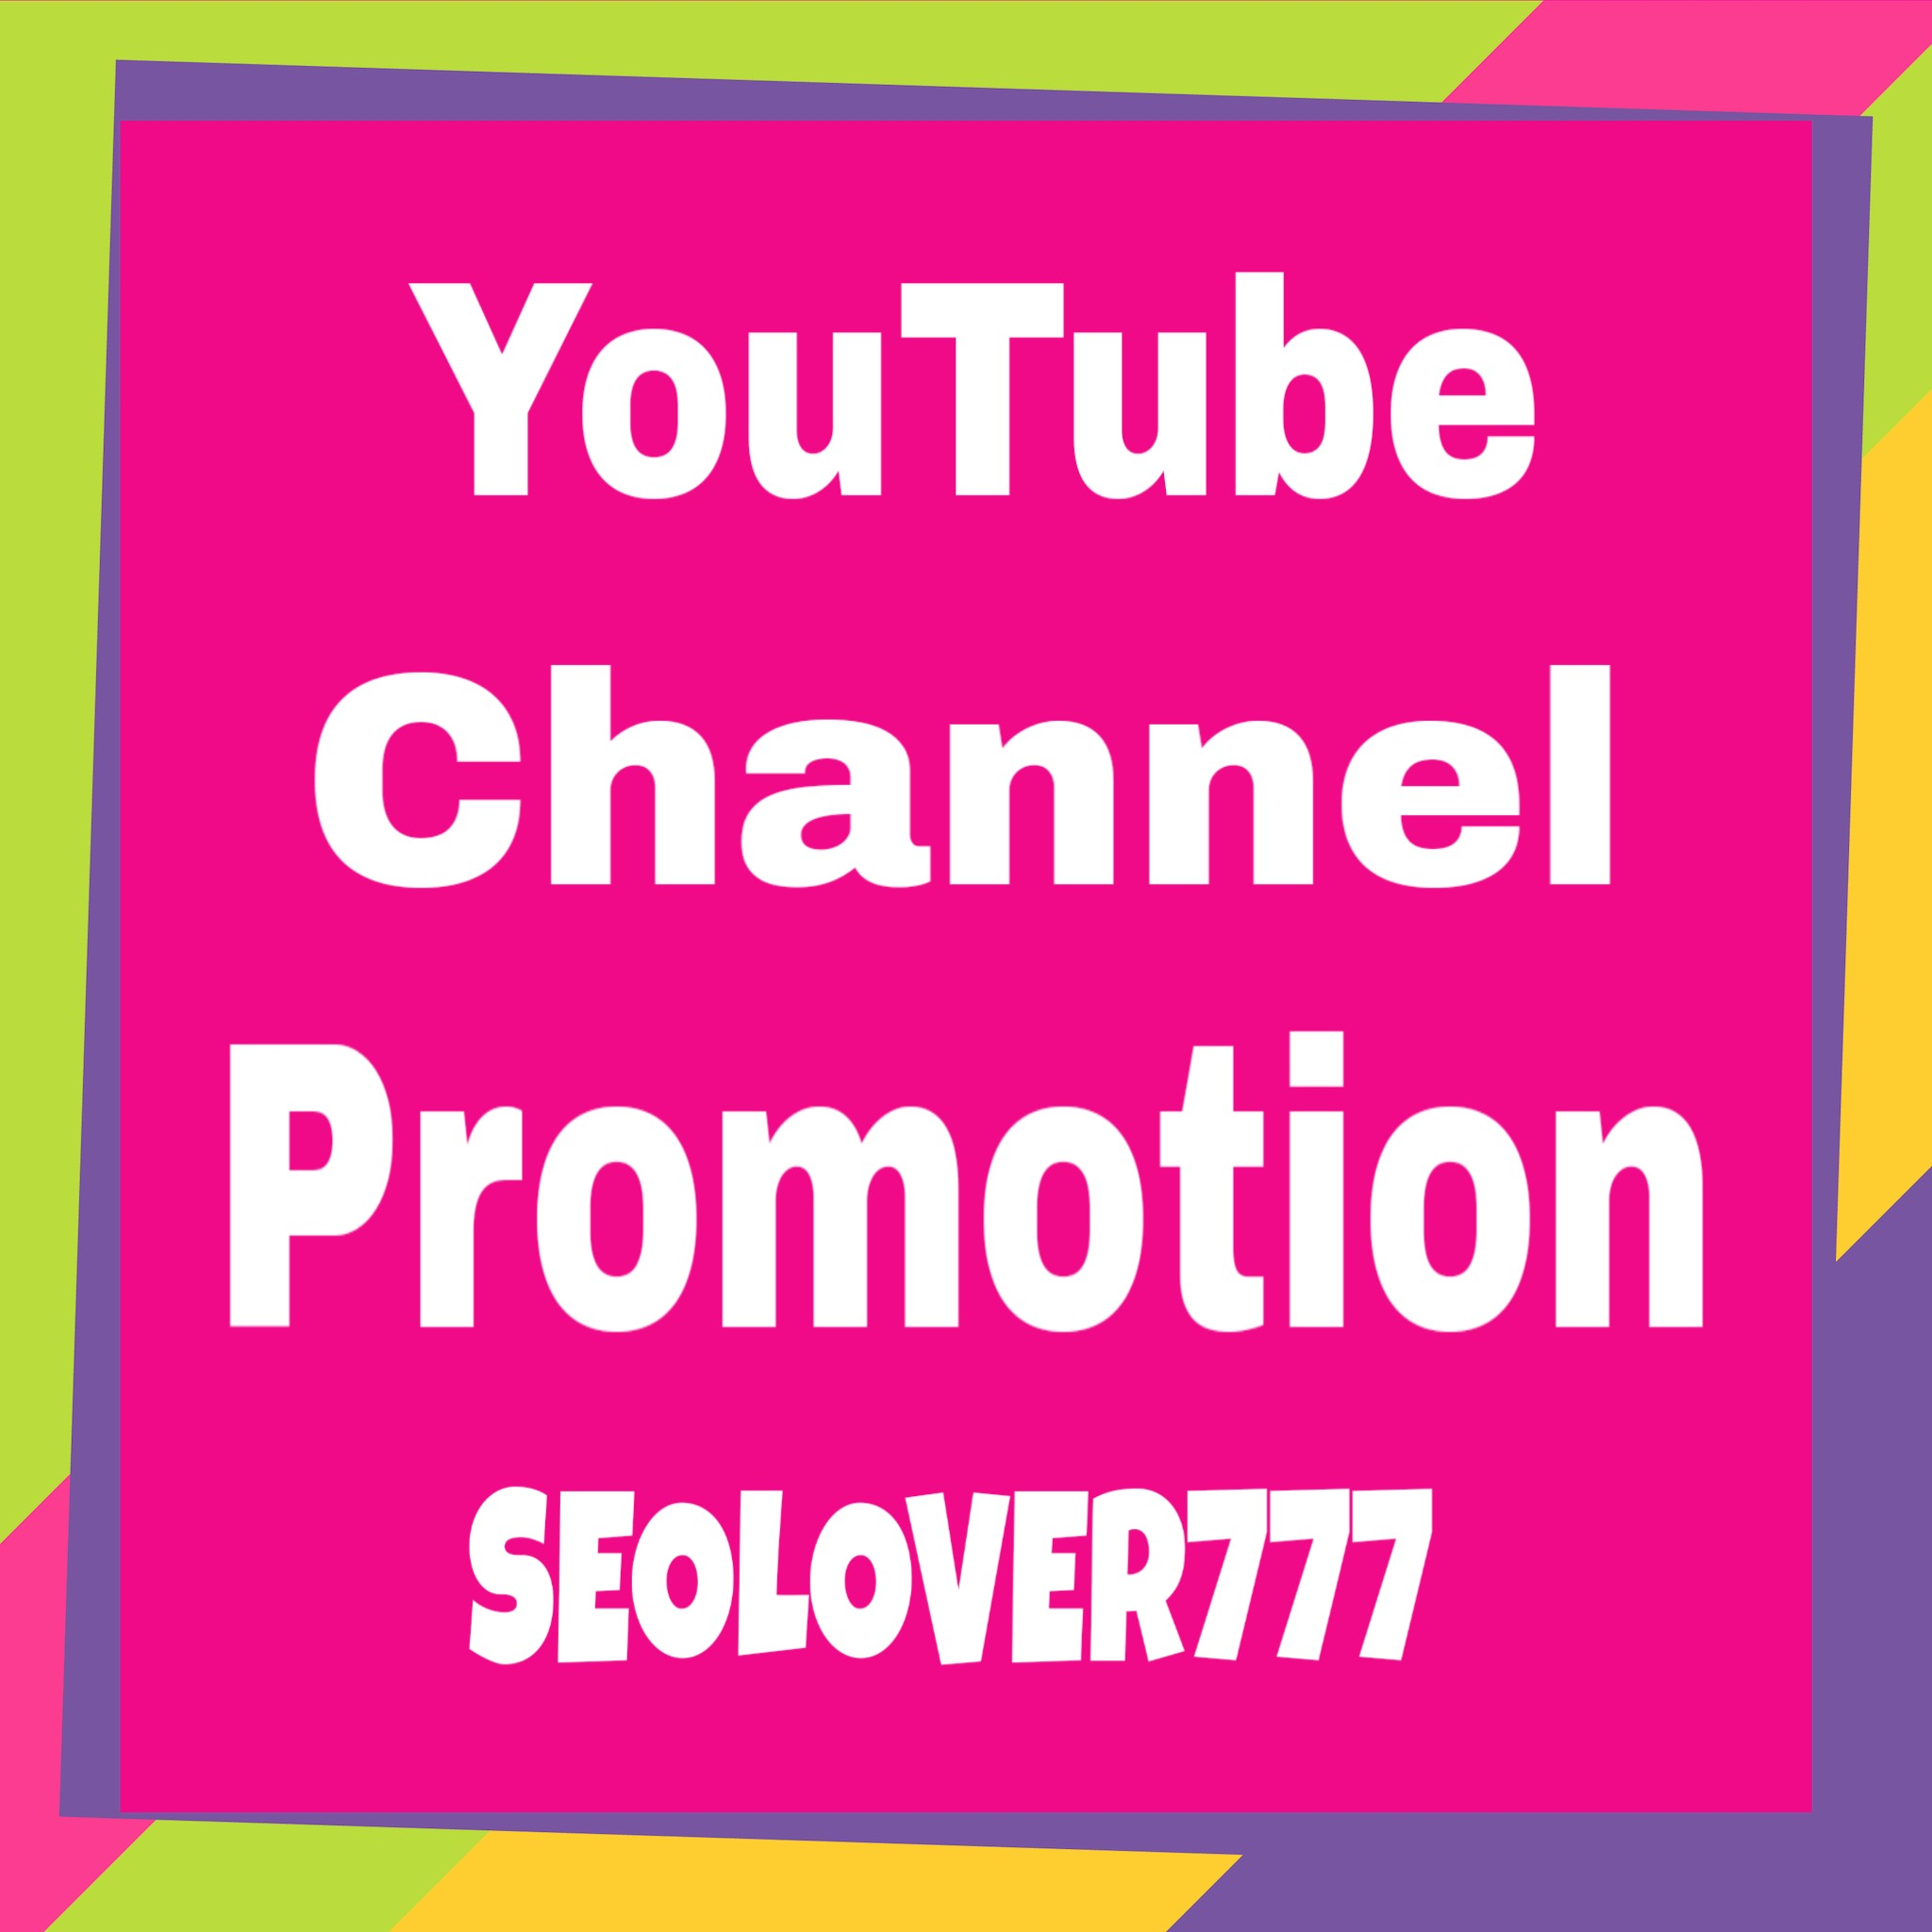 YouTube Promotion & Marketing via real users only